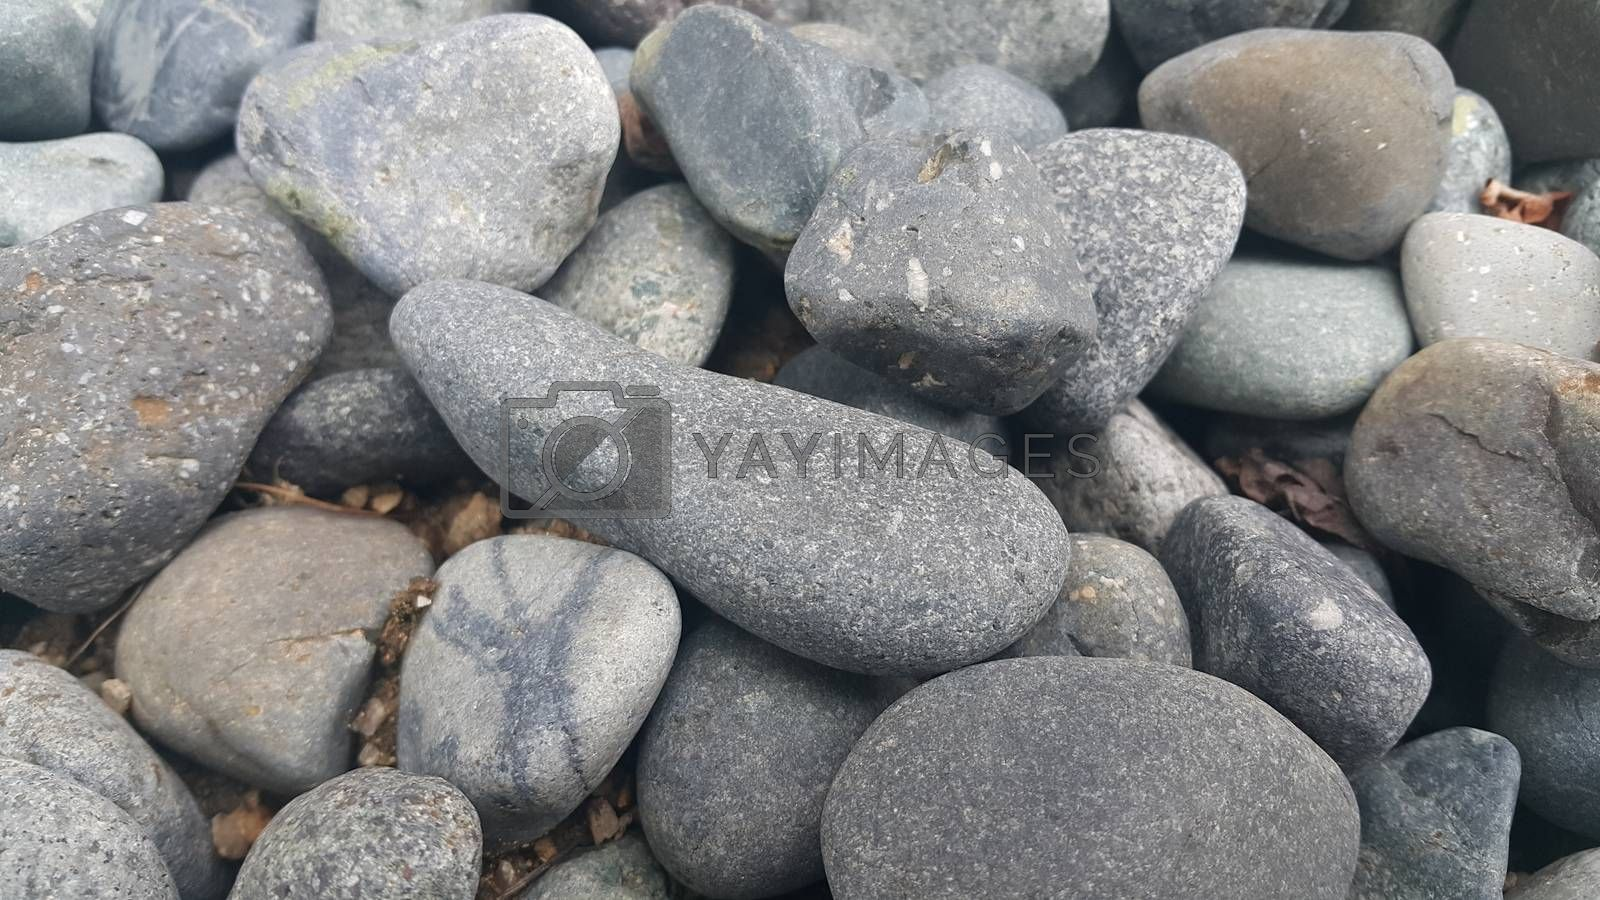 Royalty free image of Rock Pebbles, small, rounded, smooth rocks. Texture background for text by Photochowk